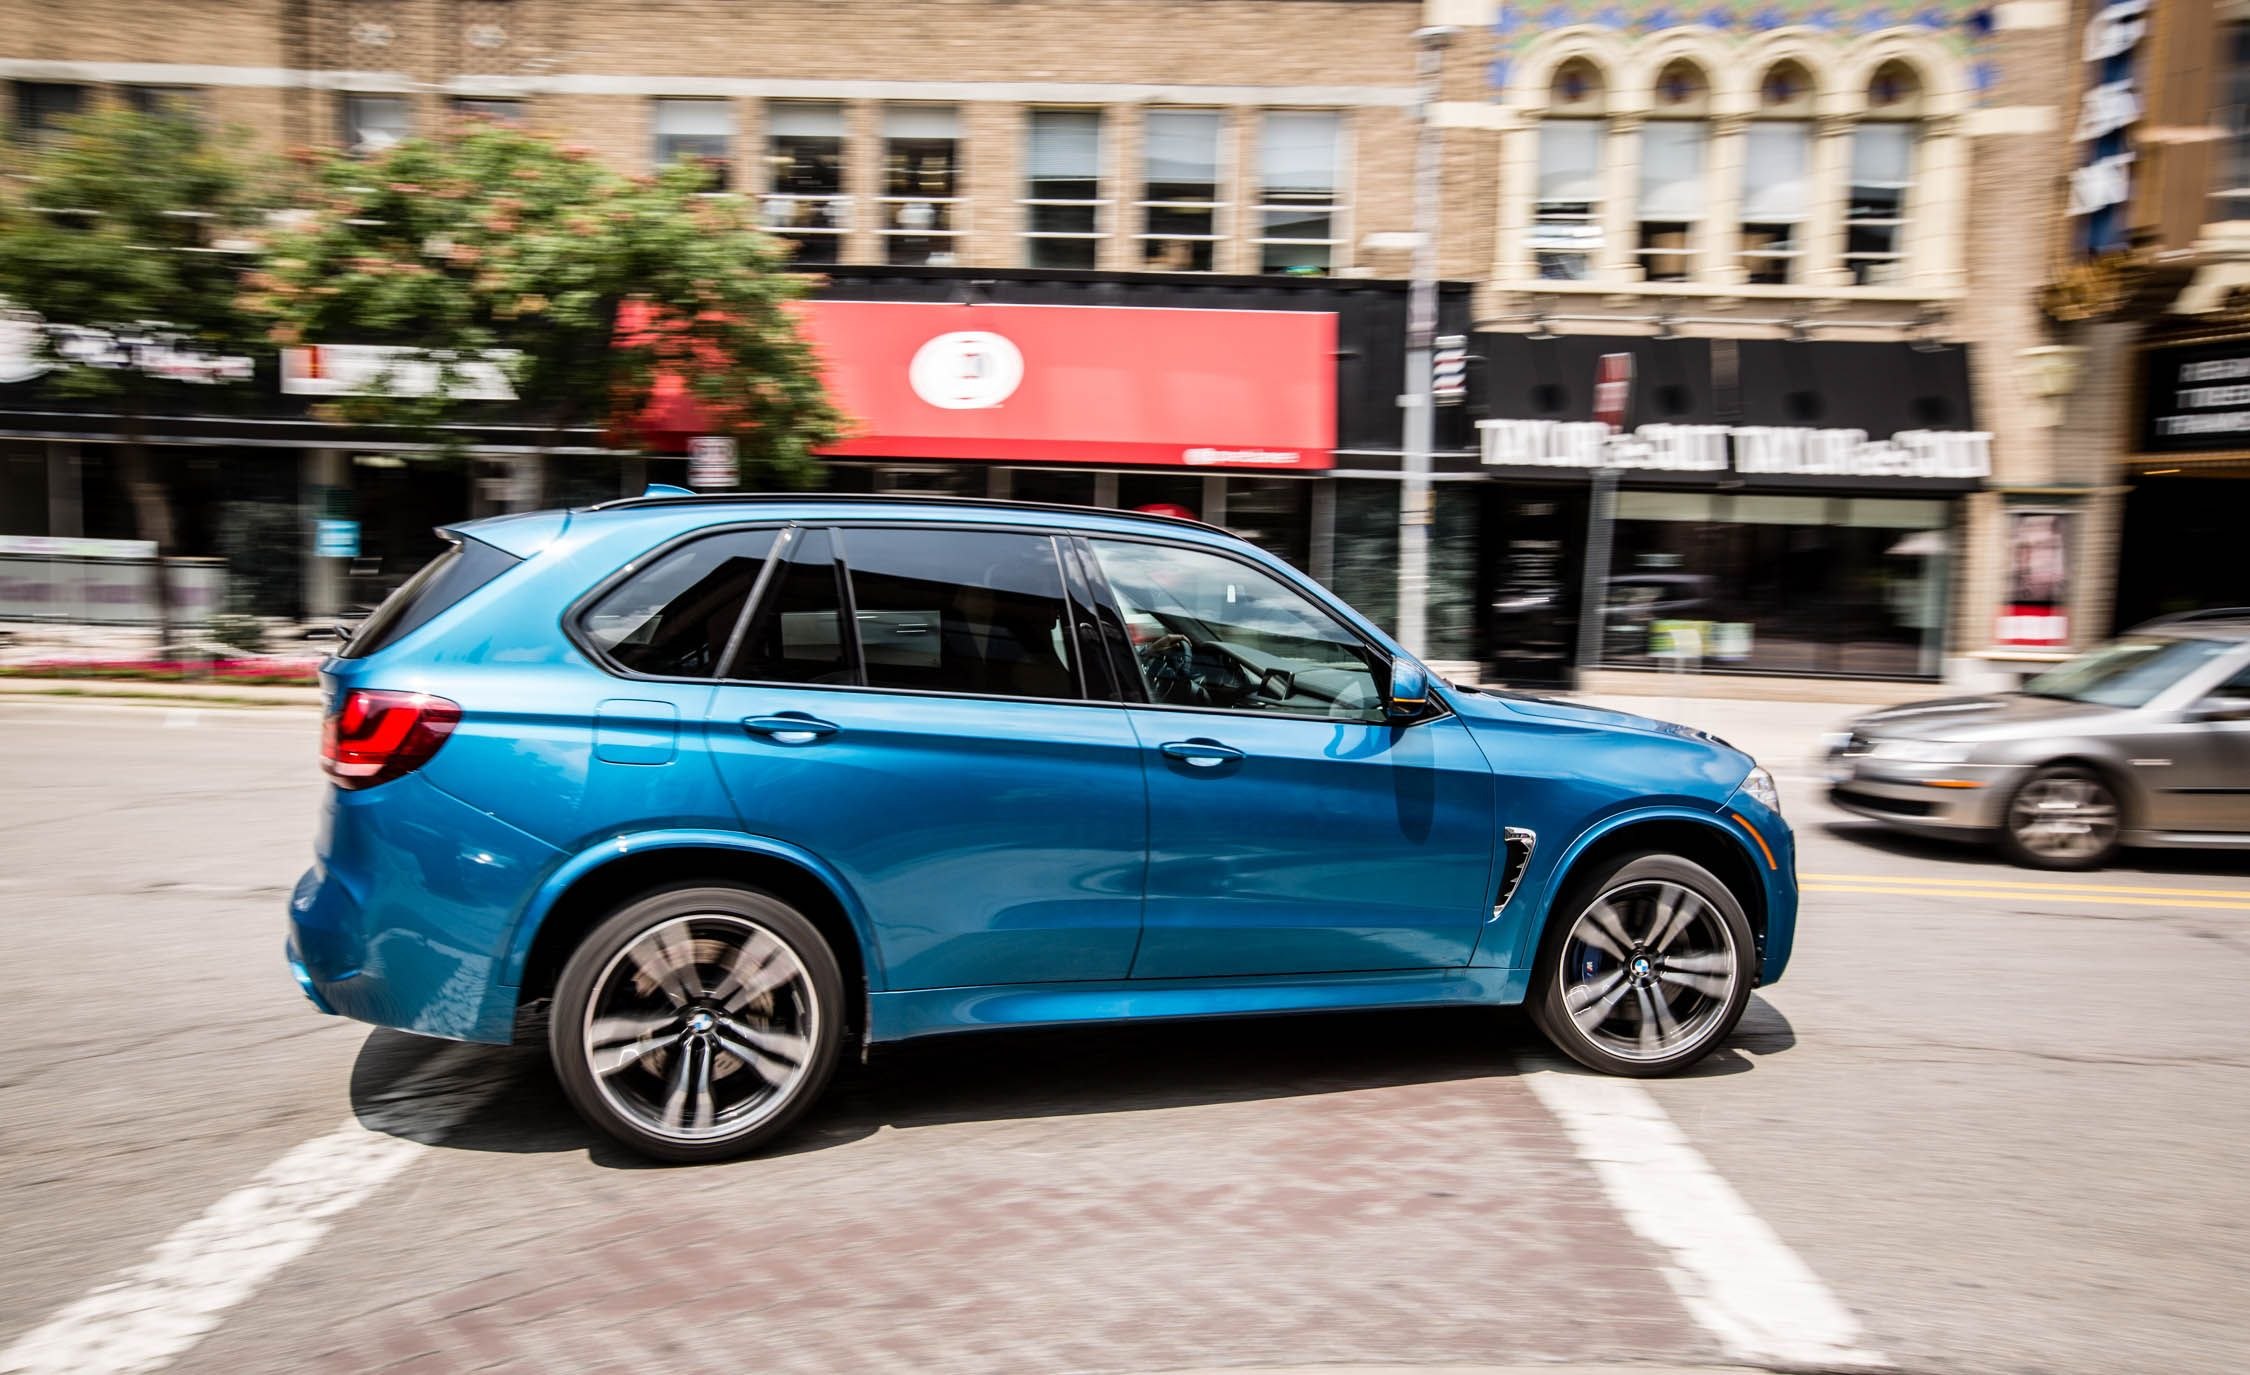 BMW X5 M Reviews BMW X5 M Price s and Specs